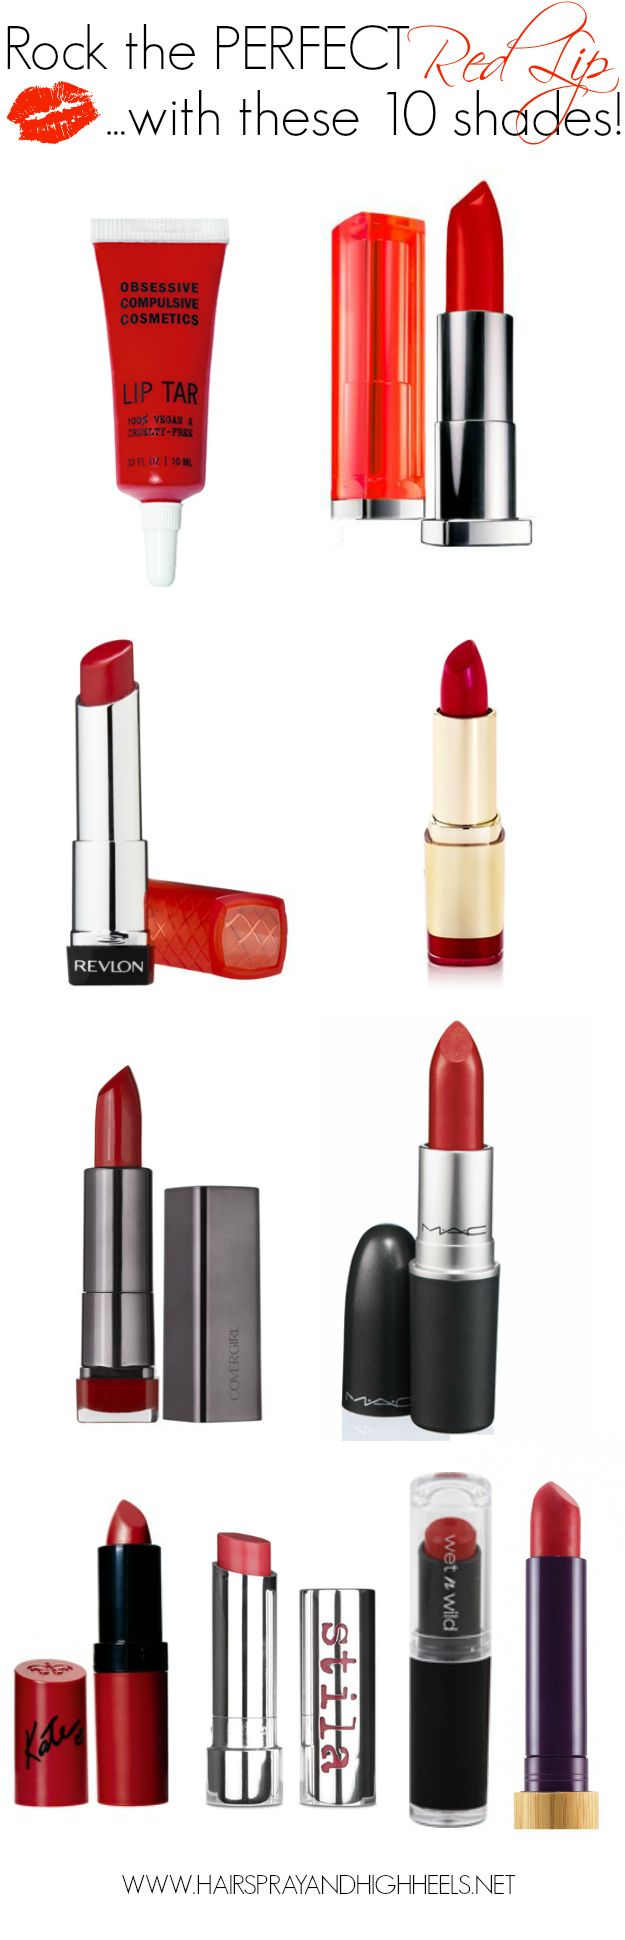 Top 10 Reds: 1) OCC Lip Tar 'Stalker'- blue-based red 2) Maybelline Color Sensation Vivid 'On Fire Red'- Deep-red 3) Revlon Lip Butter 'Candy Apple'- Bright red 4) Milani Color Statement 'Cherry Crave'- perfect cherry 5) Covergirl Lip Perfection 'Hot'- Dark maroon-ish red 6) MAC 'Ruby Woo'- A cult fav. 7) Rimmel by Kate 7 Matte Collection '111′- Deep red/purple 8) Stila Color Balm 'Ruby'- Like ruby red shoes 9) Wet N Wild 'Spotlight Red'- Bright red 10) Tarte Glamazon 'Fierce'